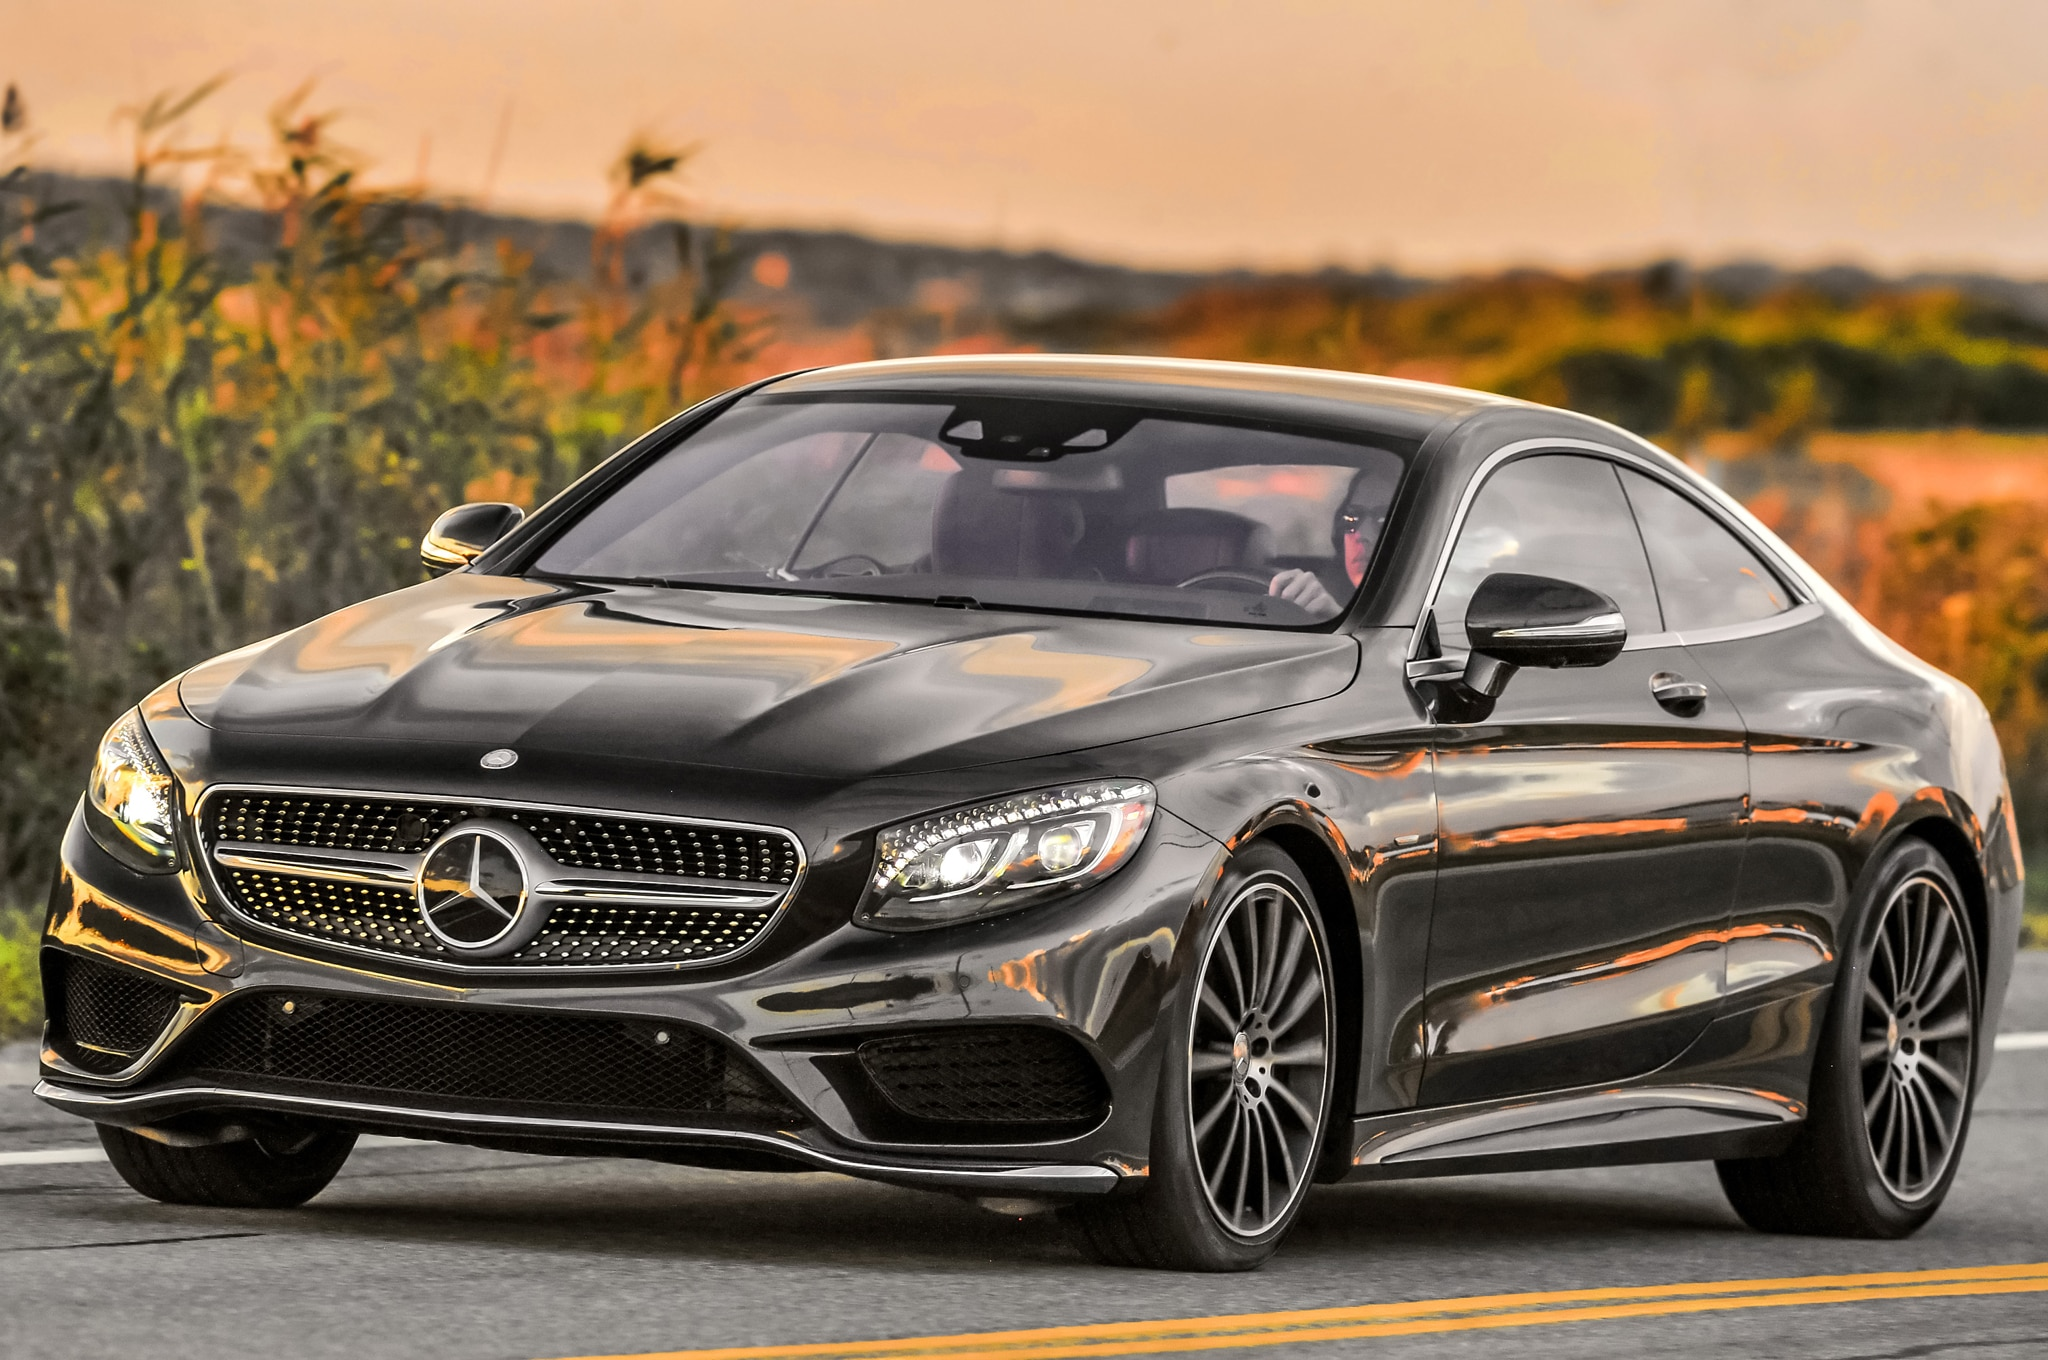 2015 mercedes benz s550 4matic coupe review. Black Bedroom Furniture Sets. Home Design Ideas